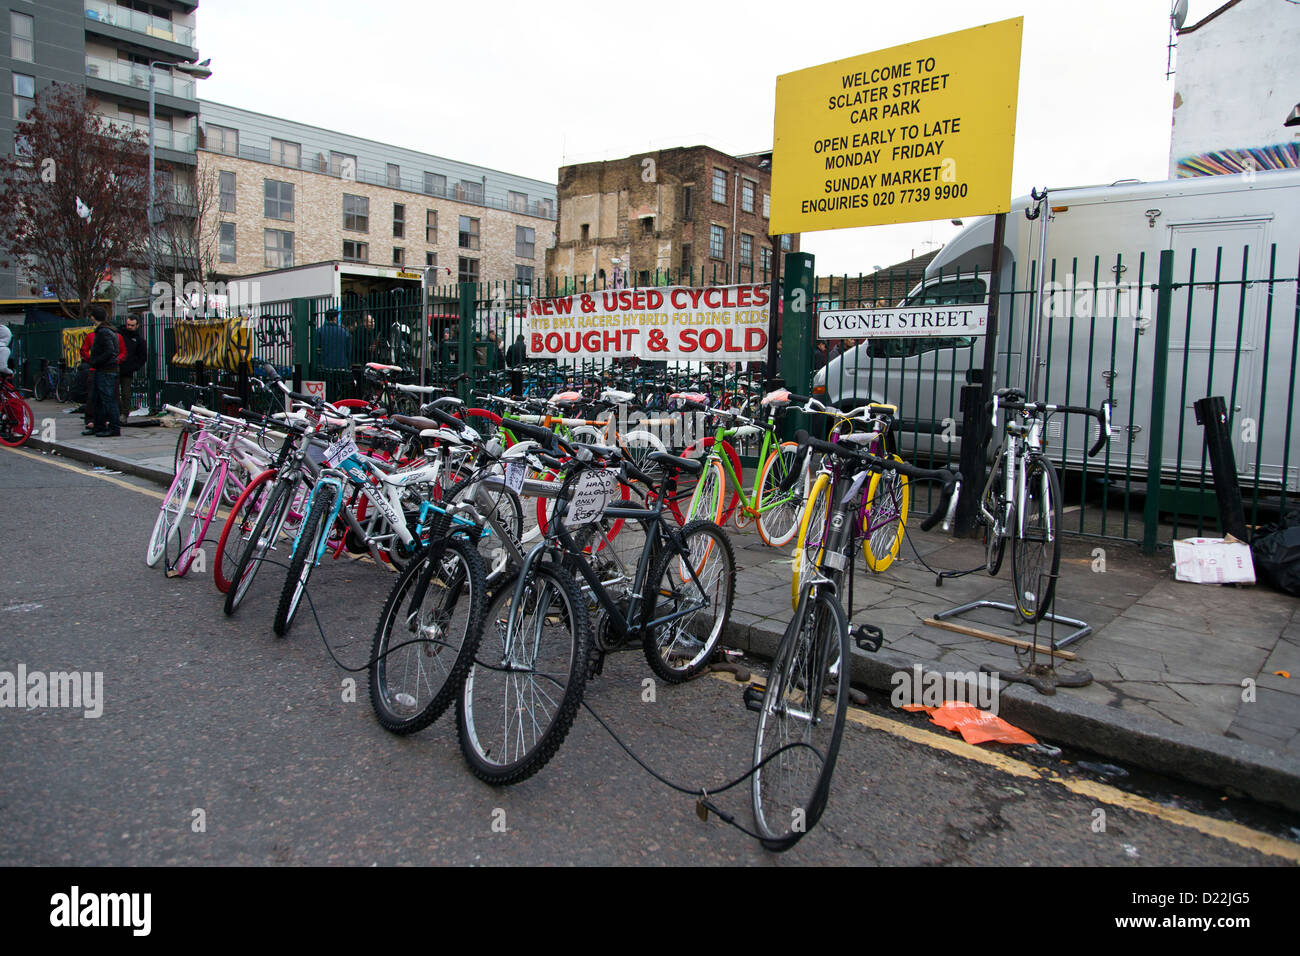 Used bicycles for sale in Cygnet Street near Brick Lane Market Stock